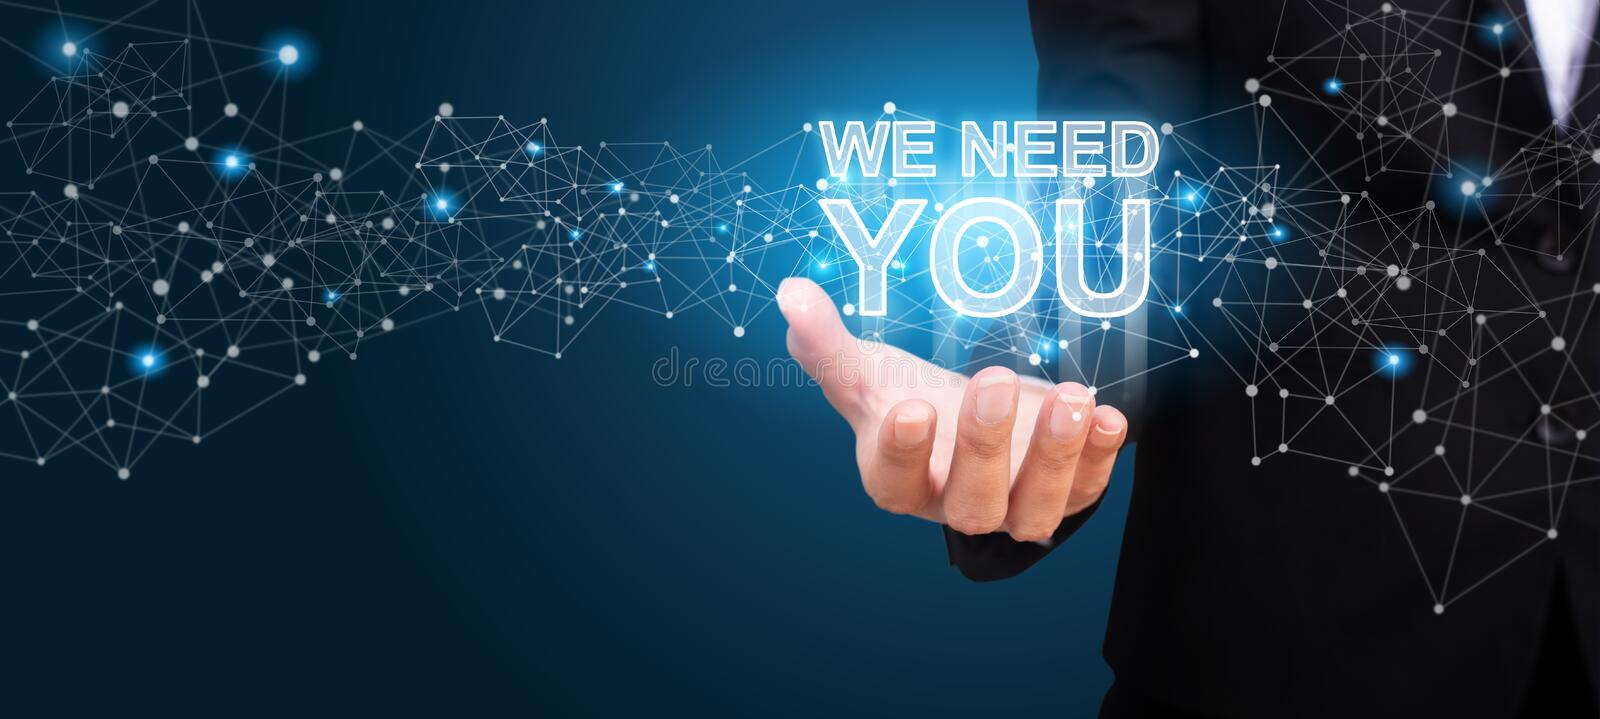 WE NEED YOU in the hand of business. We Need You concept royalty free stock image